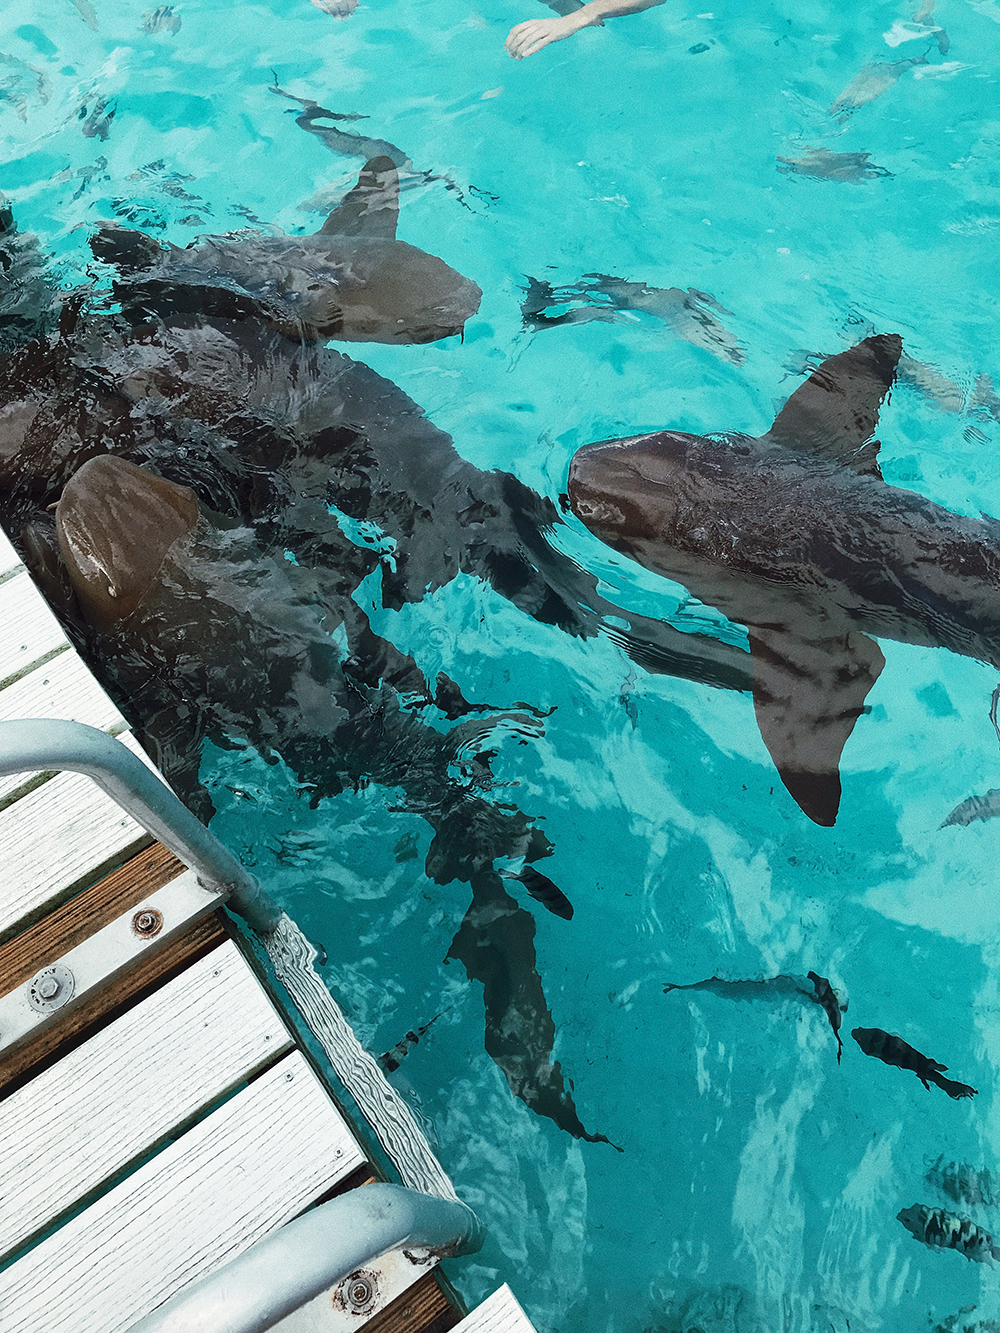 swimming with nurse sharks, The Bahamas, bahamas, island, vacation, trip, travel, birthday, melrodstyle, la blogger, travel blogger, hispanic blogger, mexican blogger, latina blogger, lifestyle blogger, lifestyle